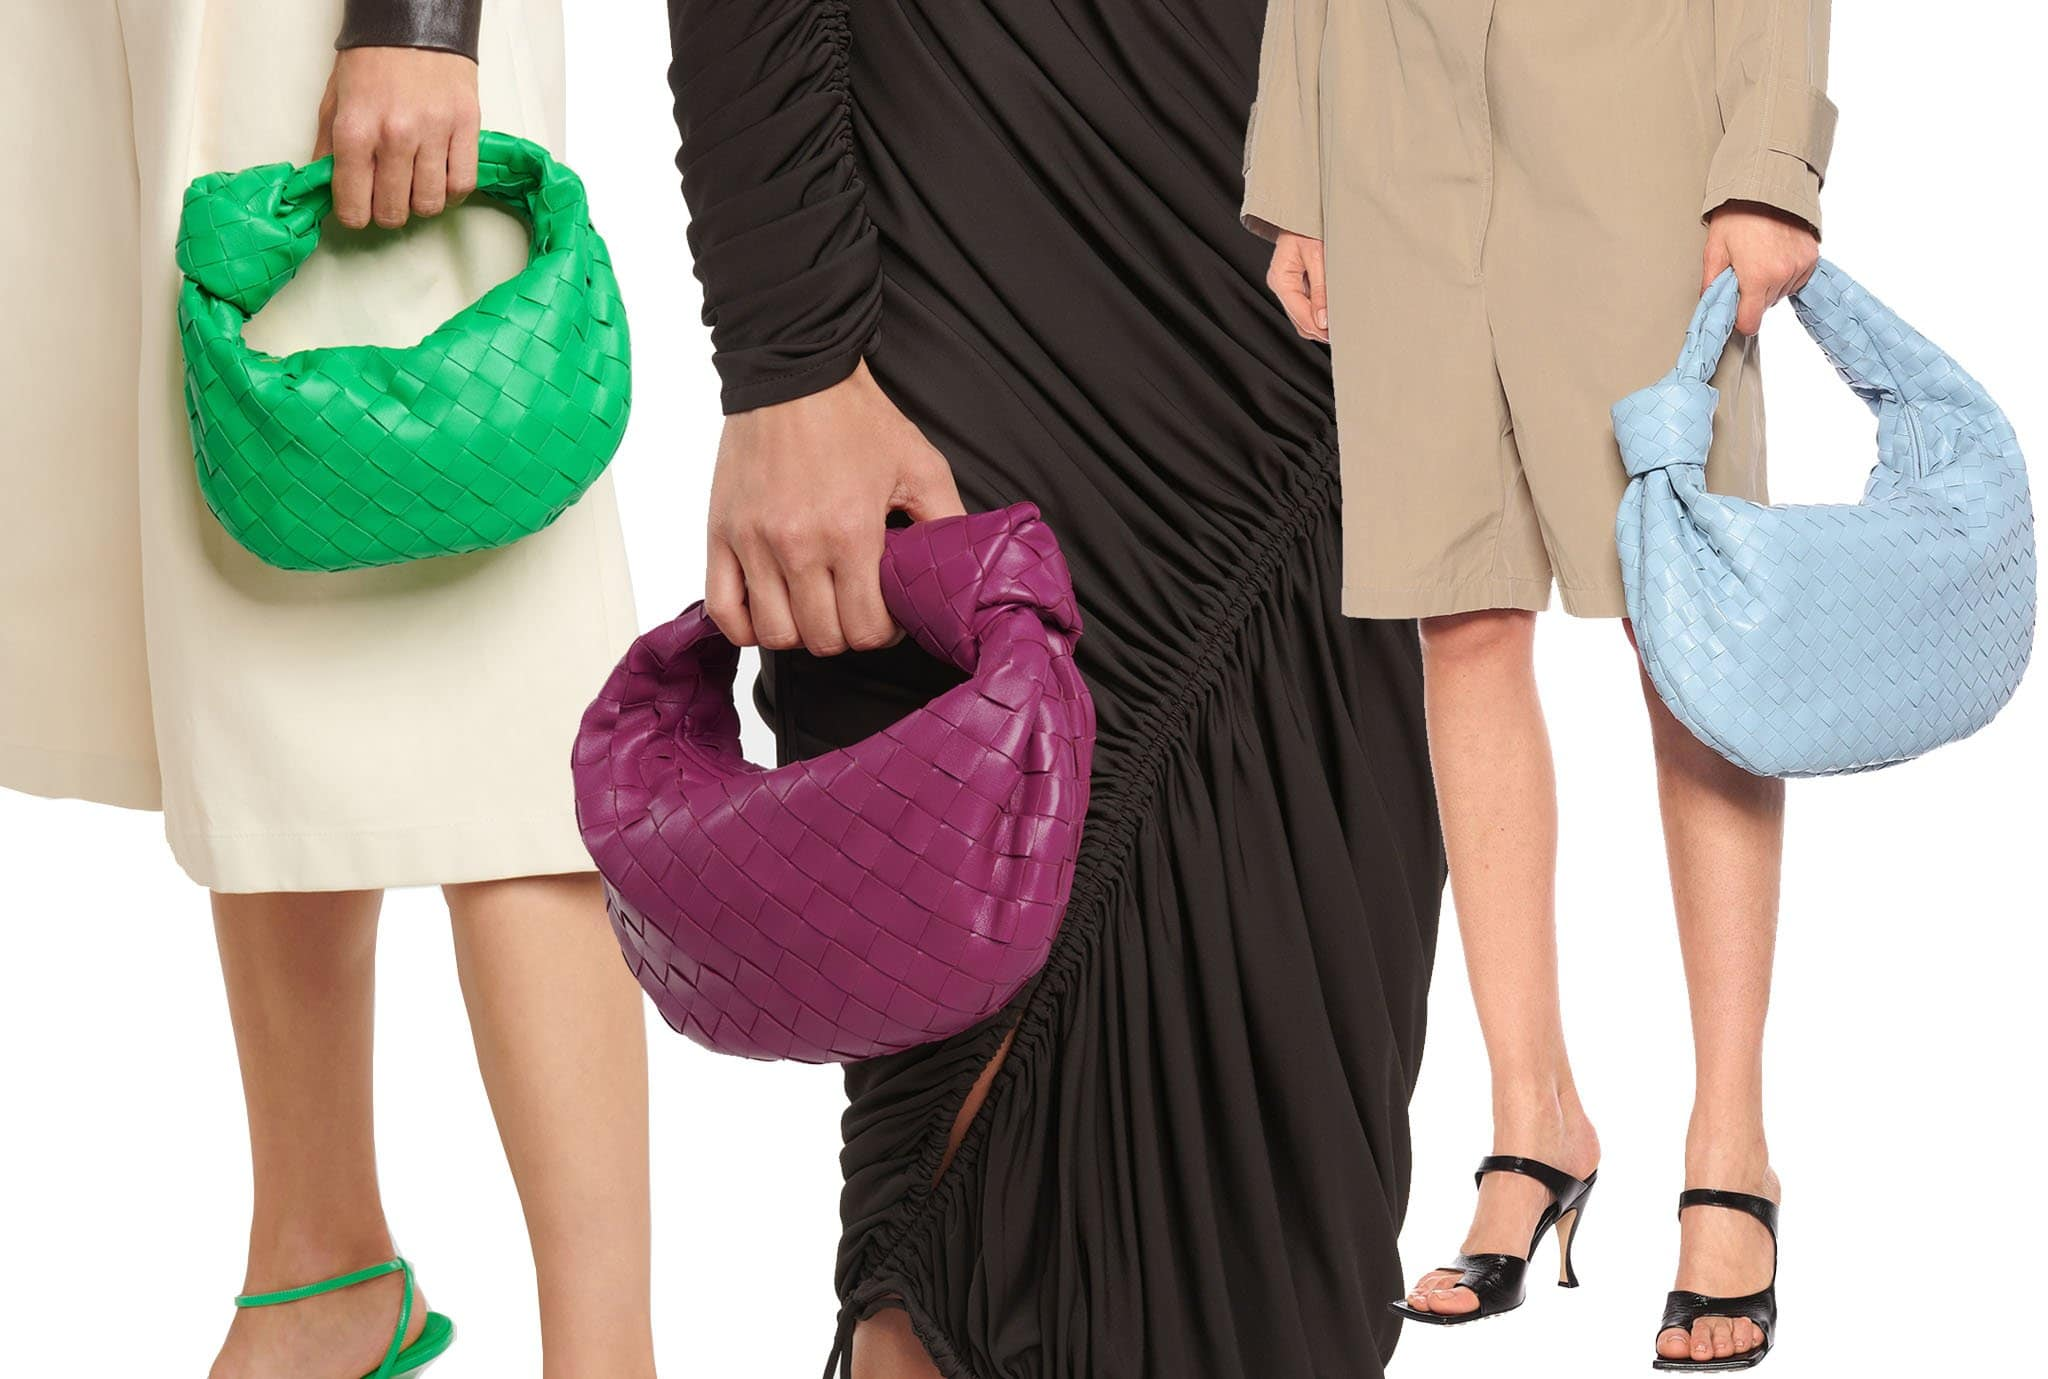 Aside from the classic neutrals, Bottega Veneta's Jodie bag also comes in a mixture of seasonal hues